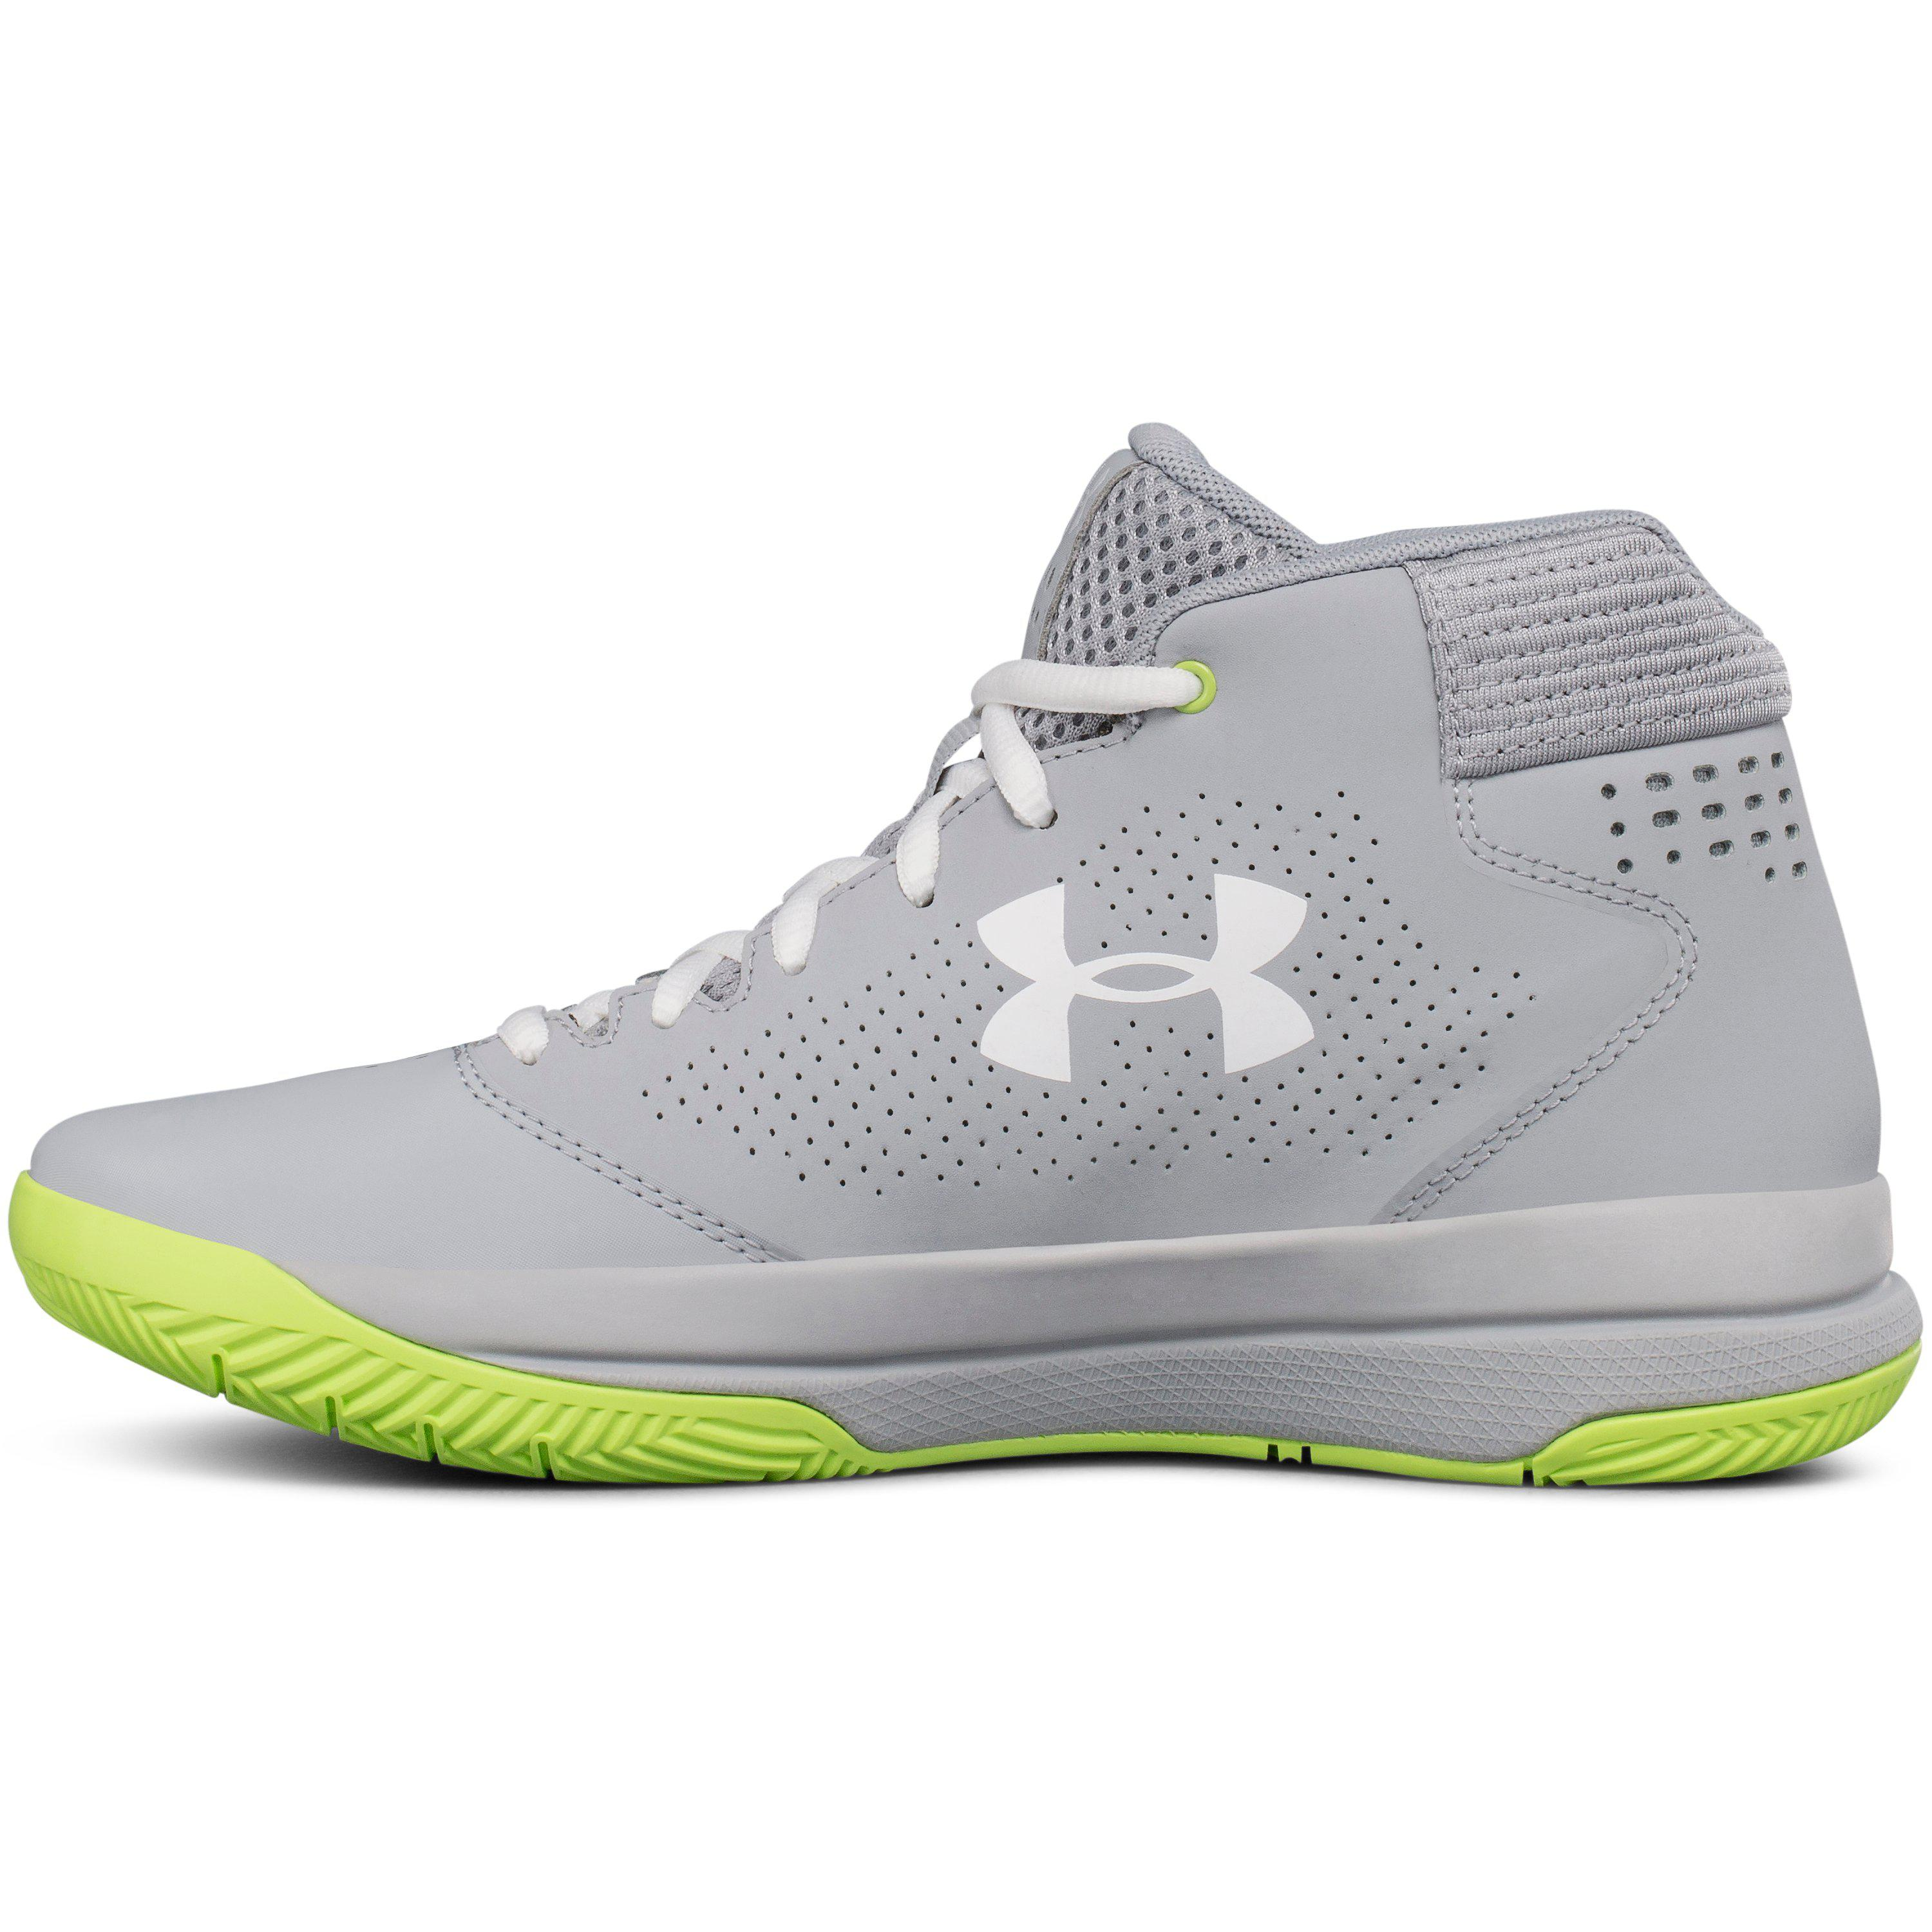 under armour womens basketball shoes neon gallery lyst under armour womens ua jet 2017 basketball shoes in gray for men